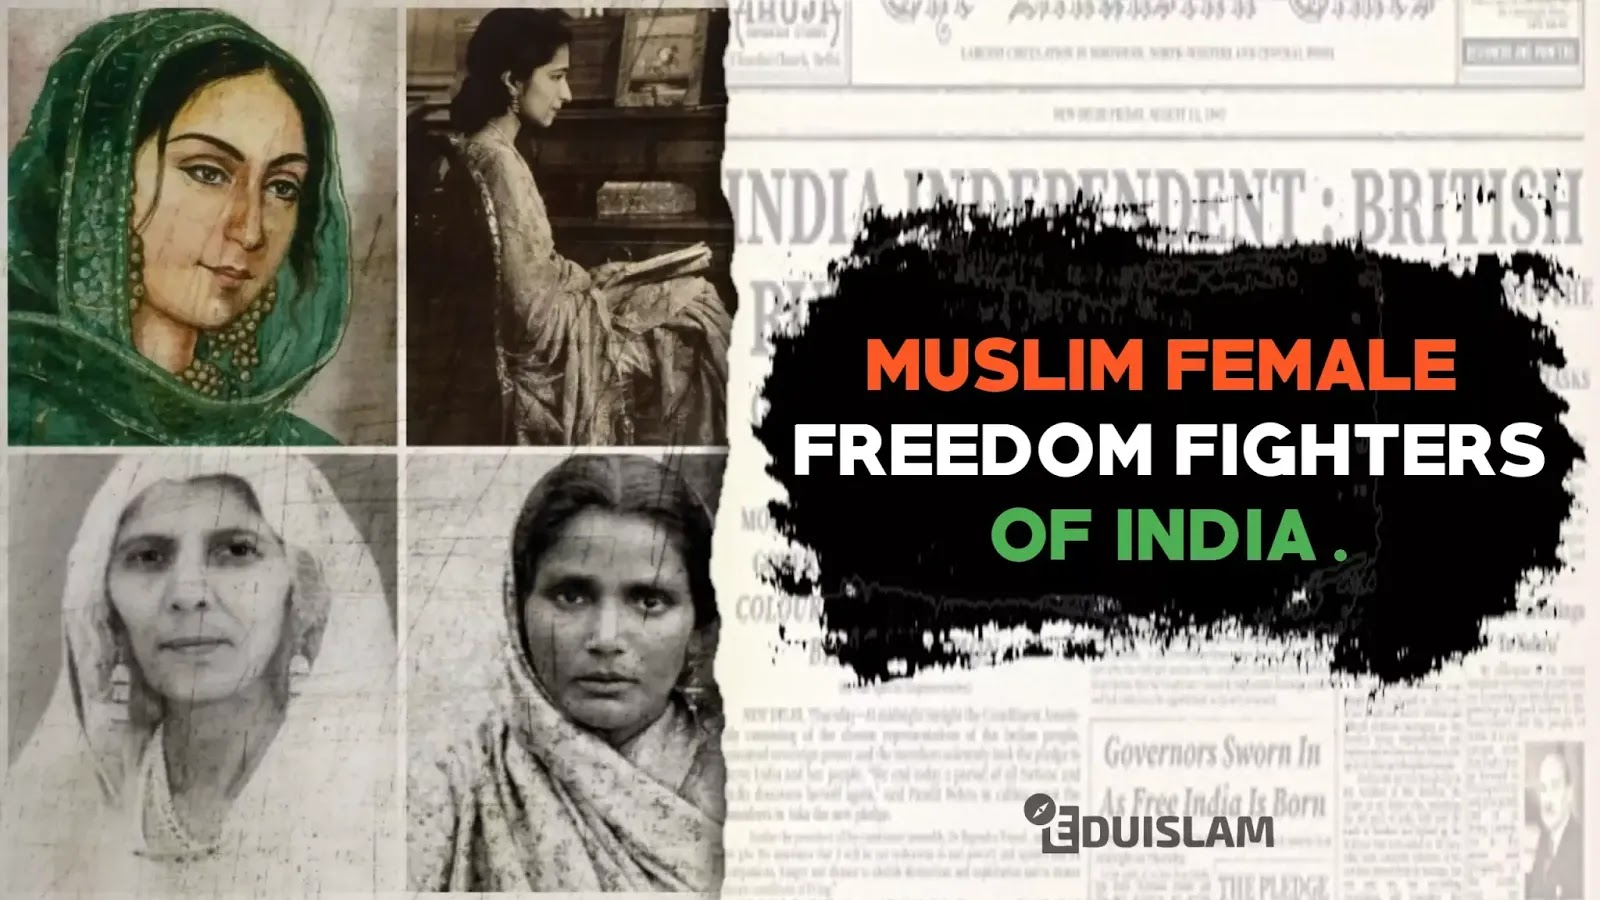 Muslim female freedom fighters of India